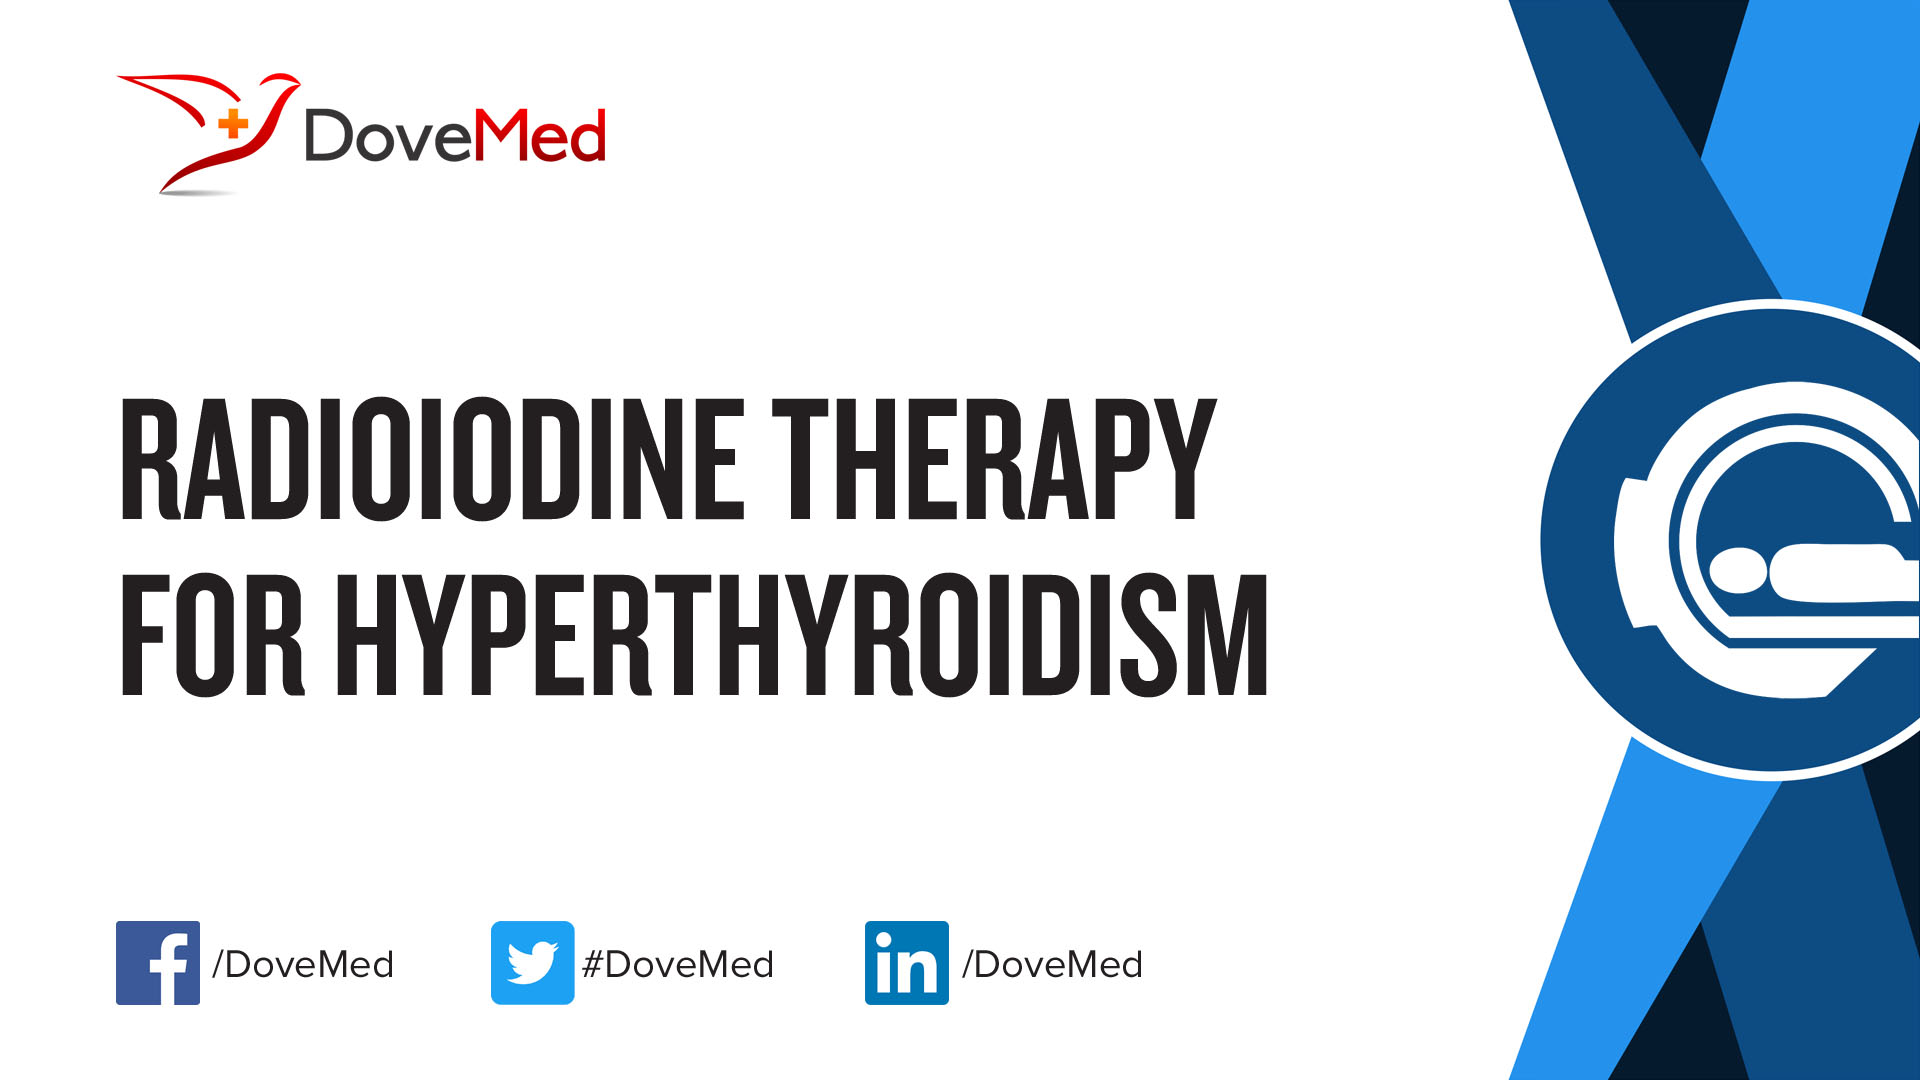 radioiodine therapy for hyperthyroidism Radioiodine therapy for feline hyperthyroidism recovery from hyperthyroidism without treatment does not occur if left untreated, hyperthyroid cats will progress to emaciation, severe metabolic and cardiac disease, and death.